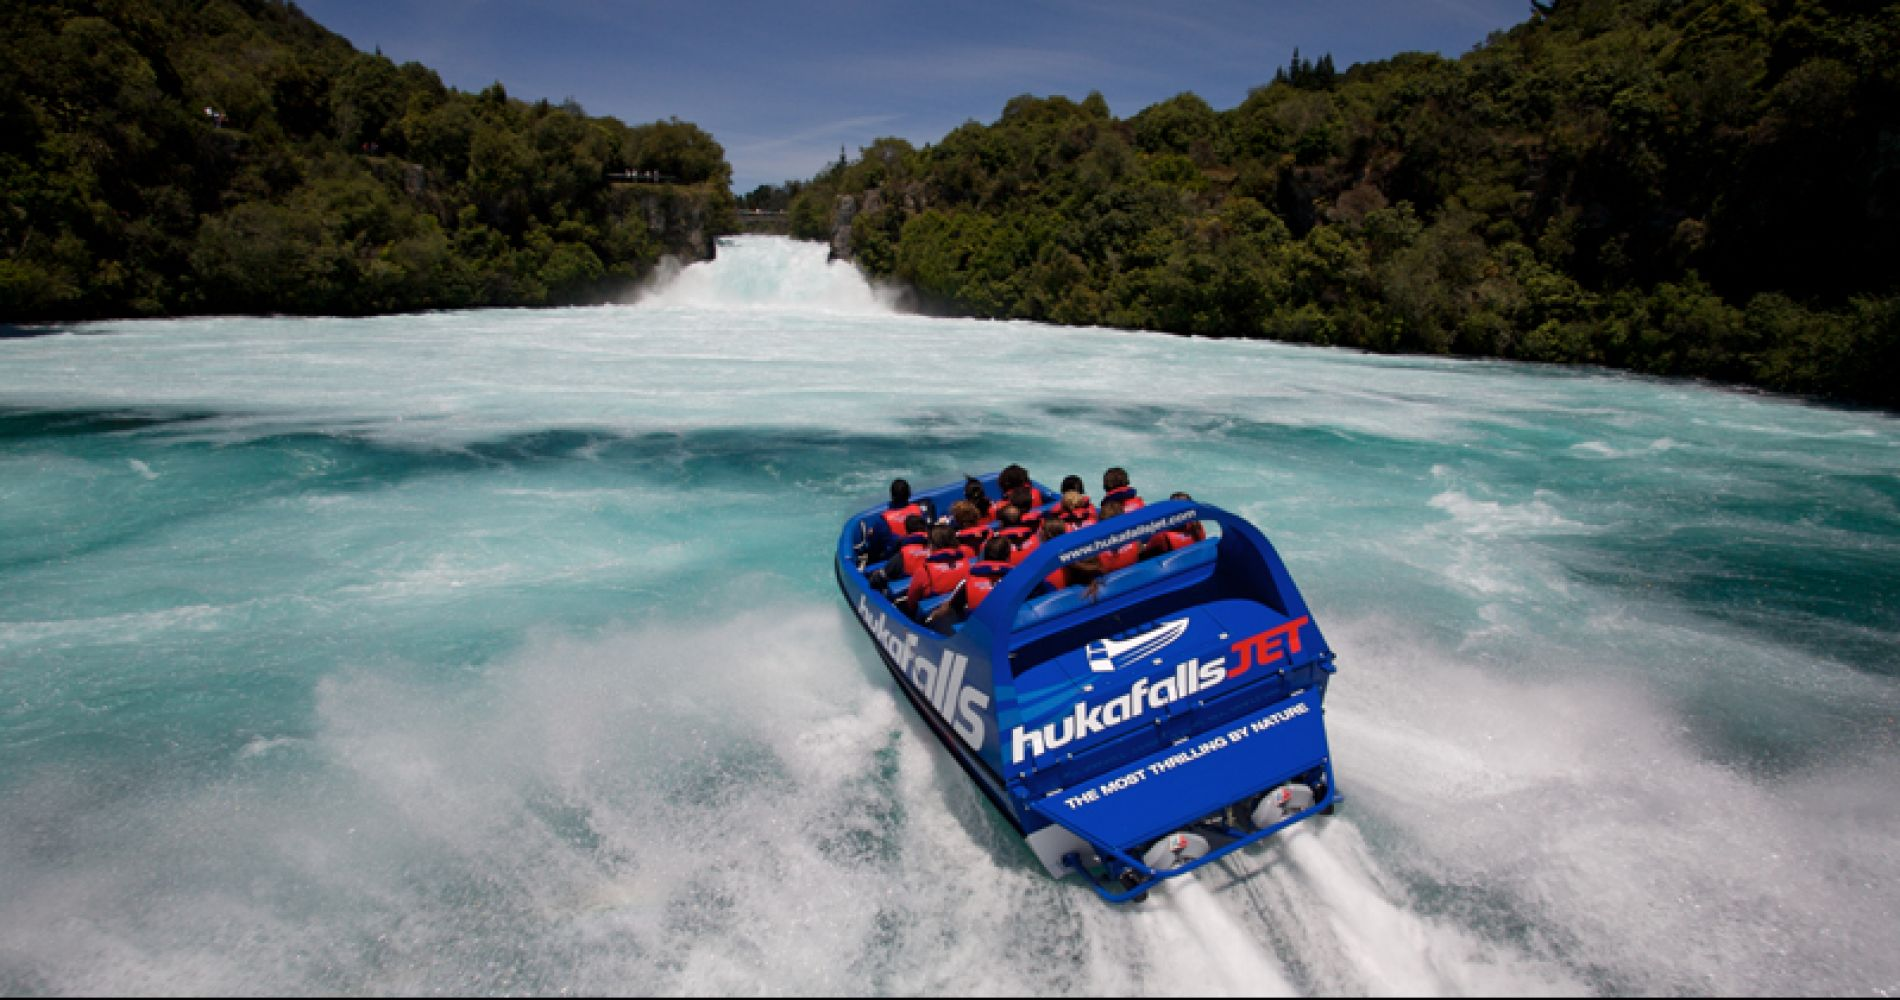 Hukafalls Jet Boat Experience for Two